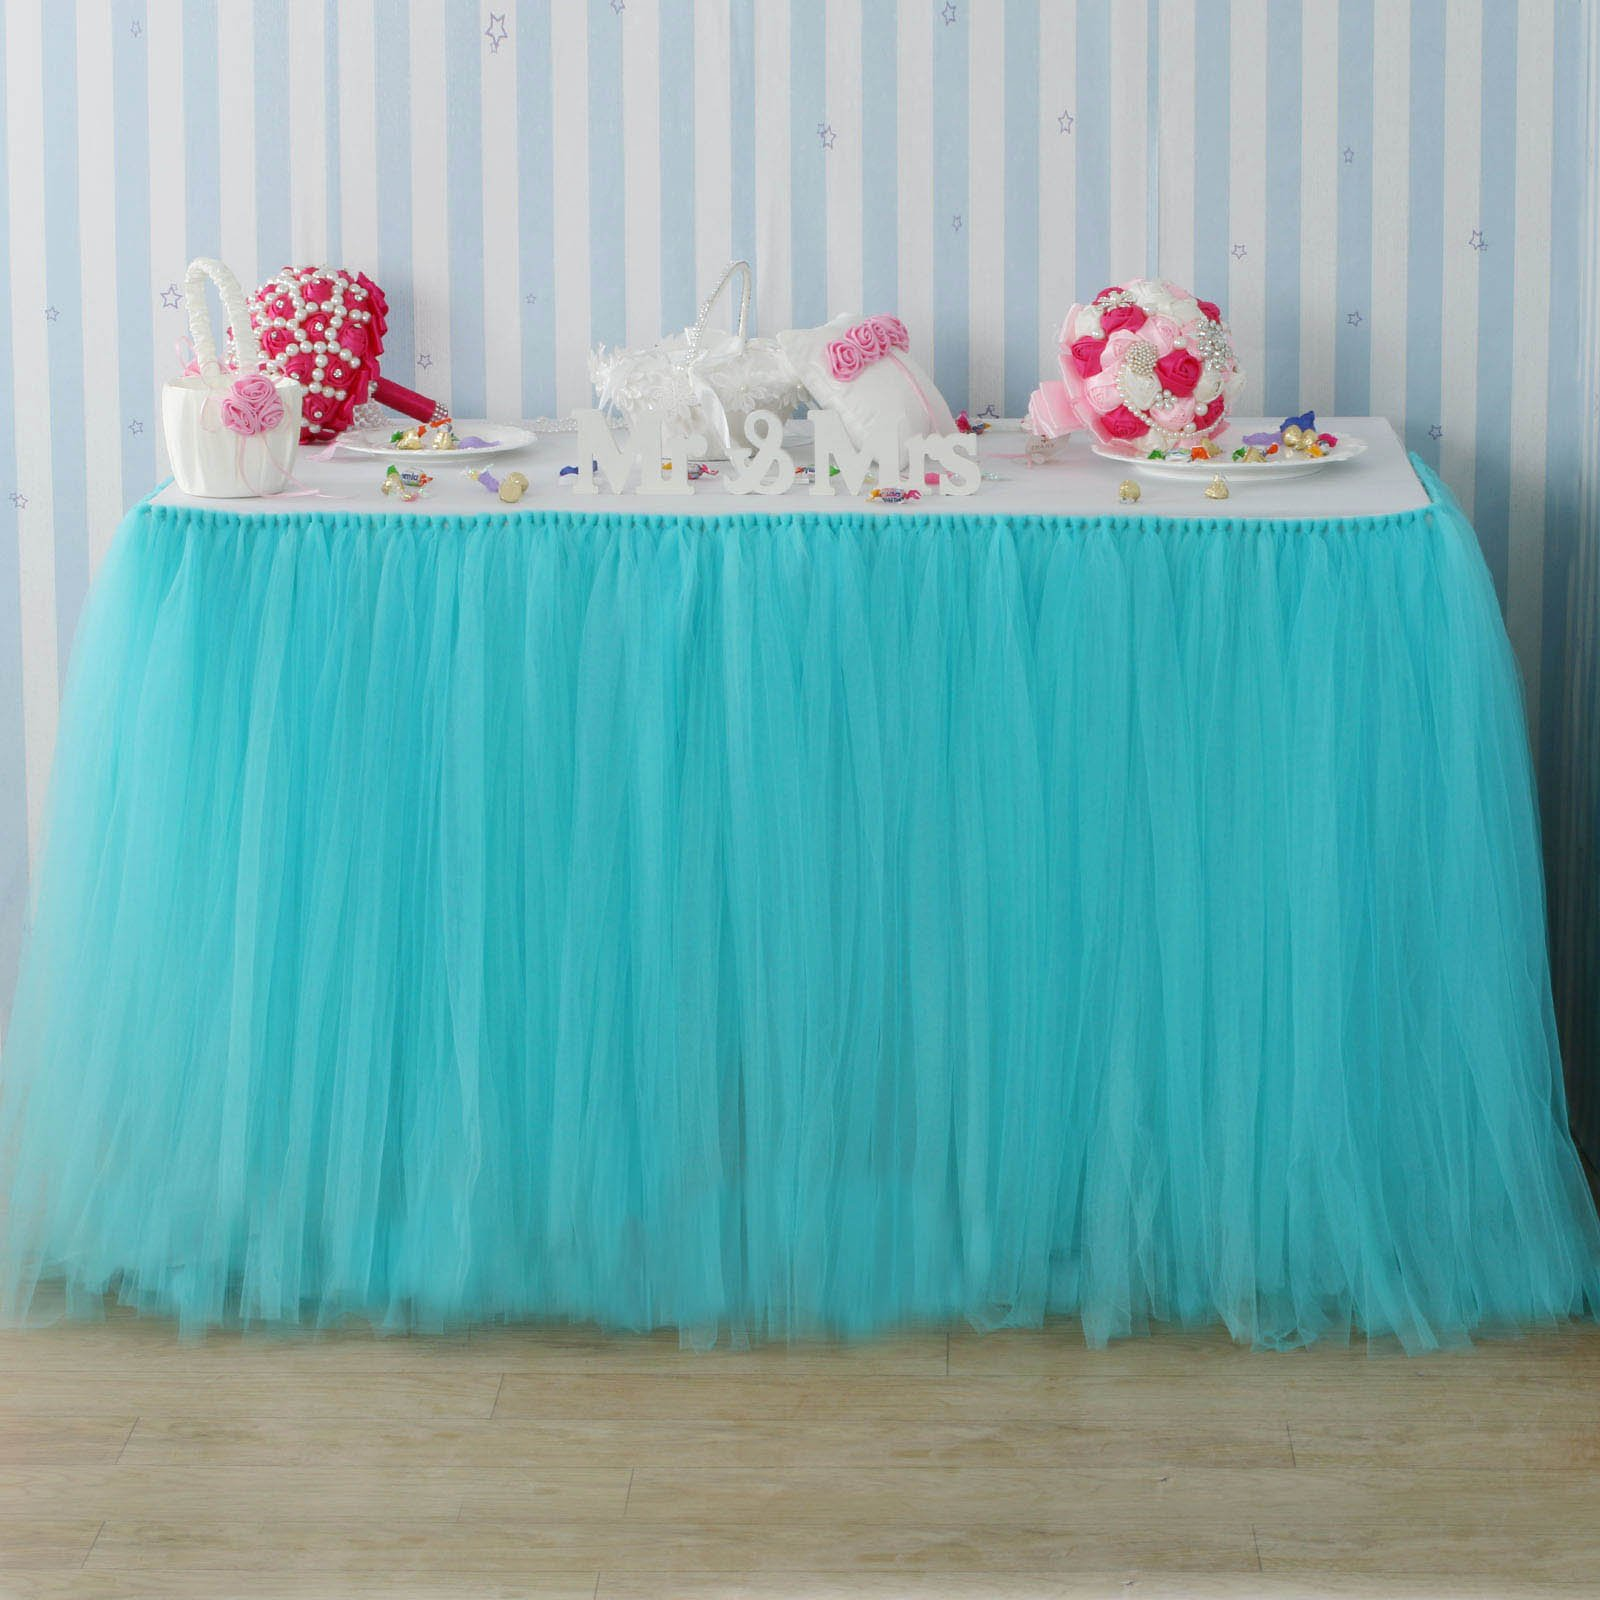 Fivejorya 3.3ft Turquoise Blue Tulle Table Skirt Queen Wonderland Tablecloth Skirting Tutu Tablecloth Tableware for Christmas Wedding Baby Shower Birthday Party Cake Dessert Table Decor